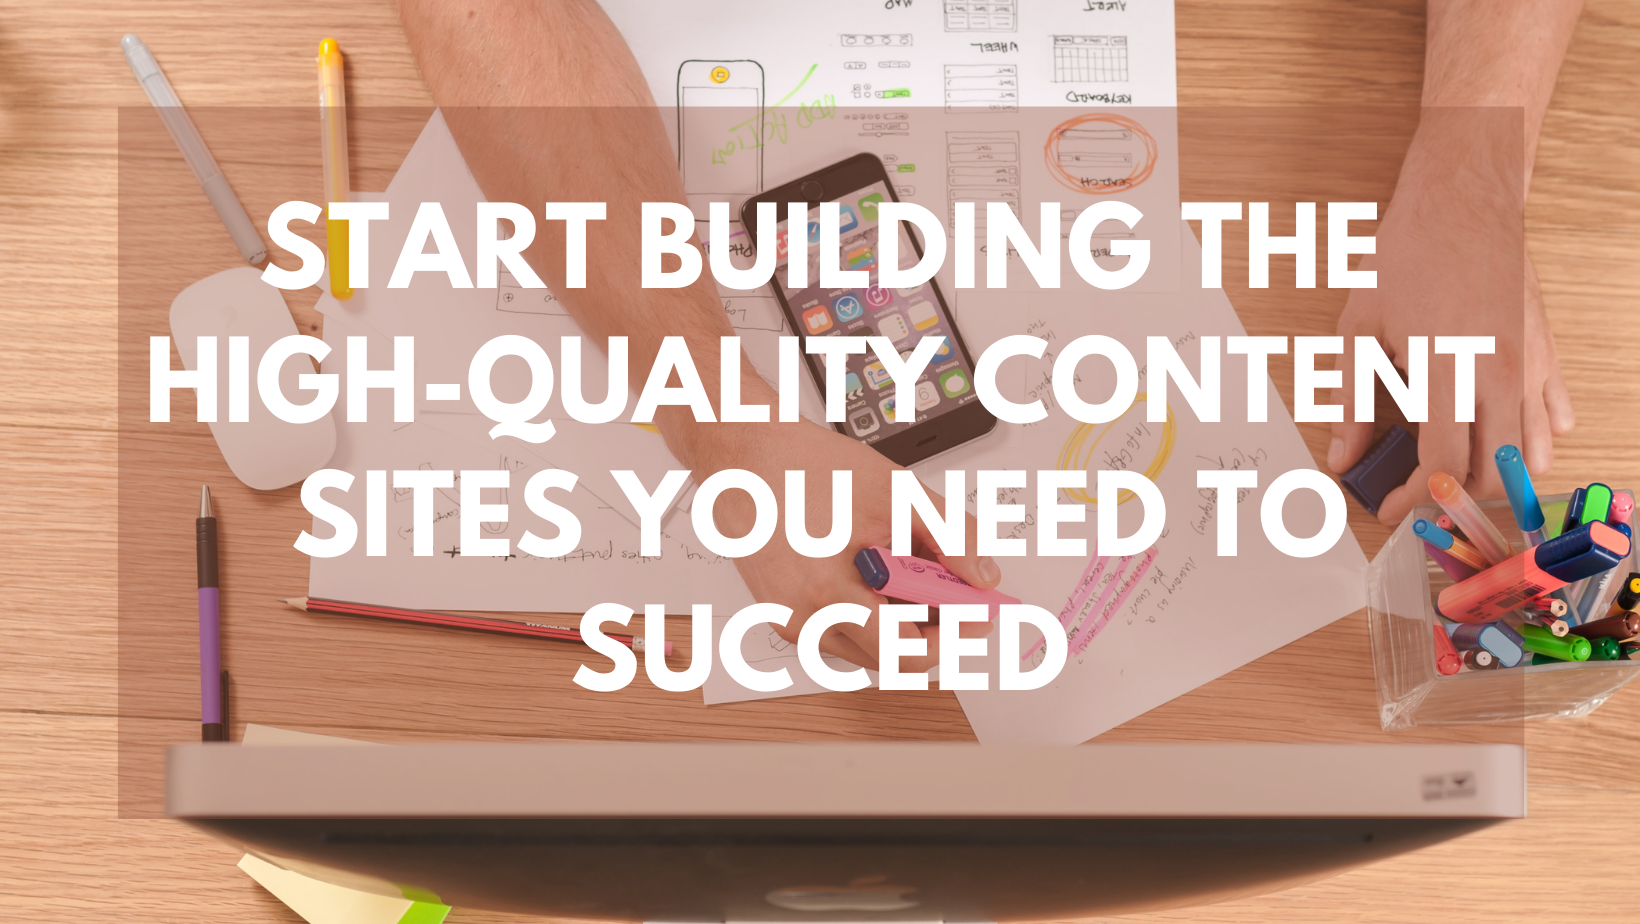 Fast content producer for Building High-Quality Content Sites